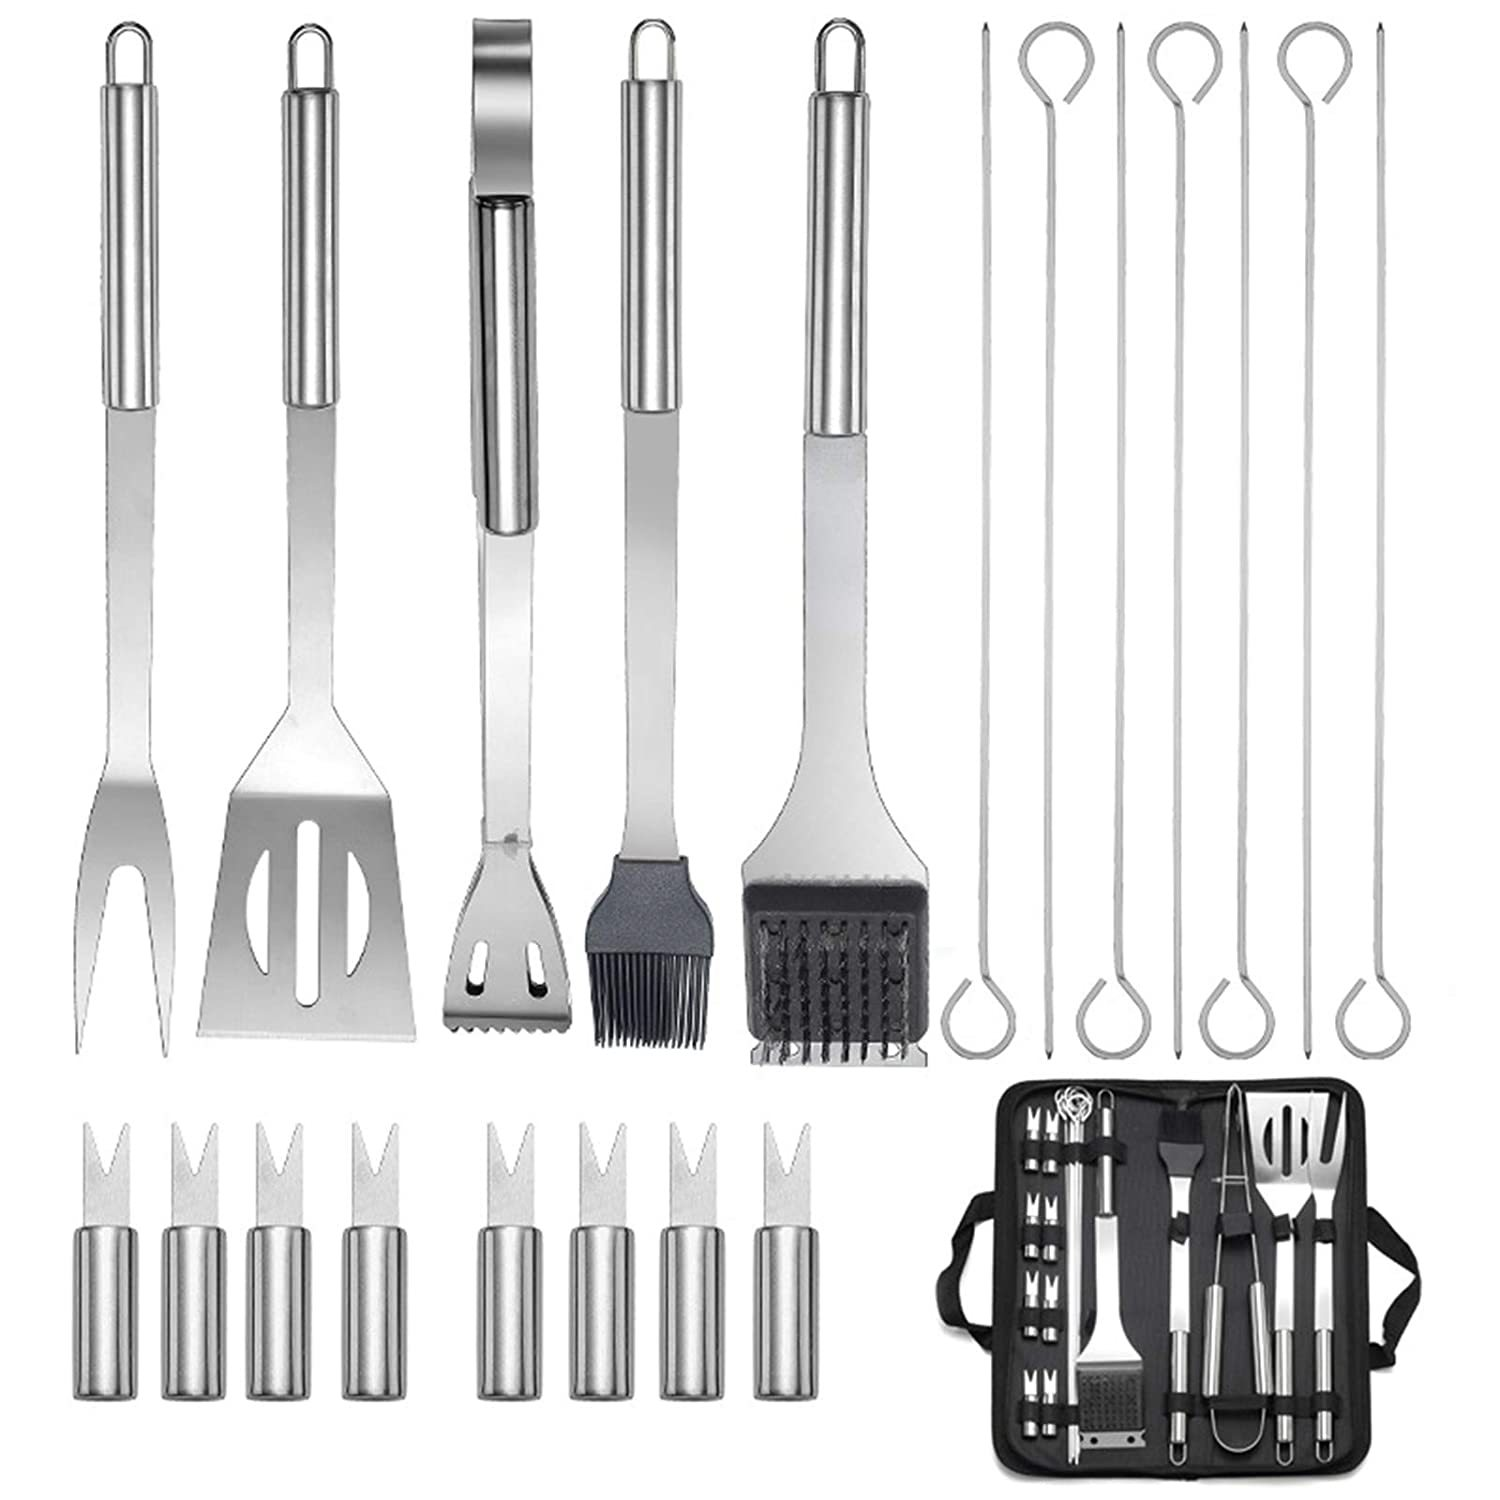 20Pcs Barbecue Tool Set Suitable For Giving And Outdoor Camping And Picnics - £24.71 GBP